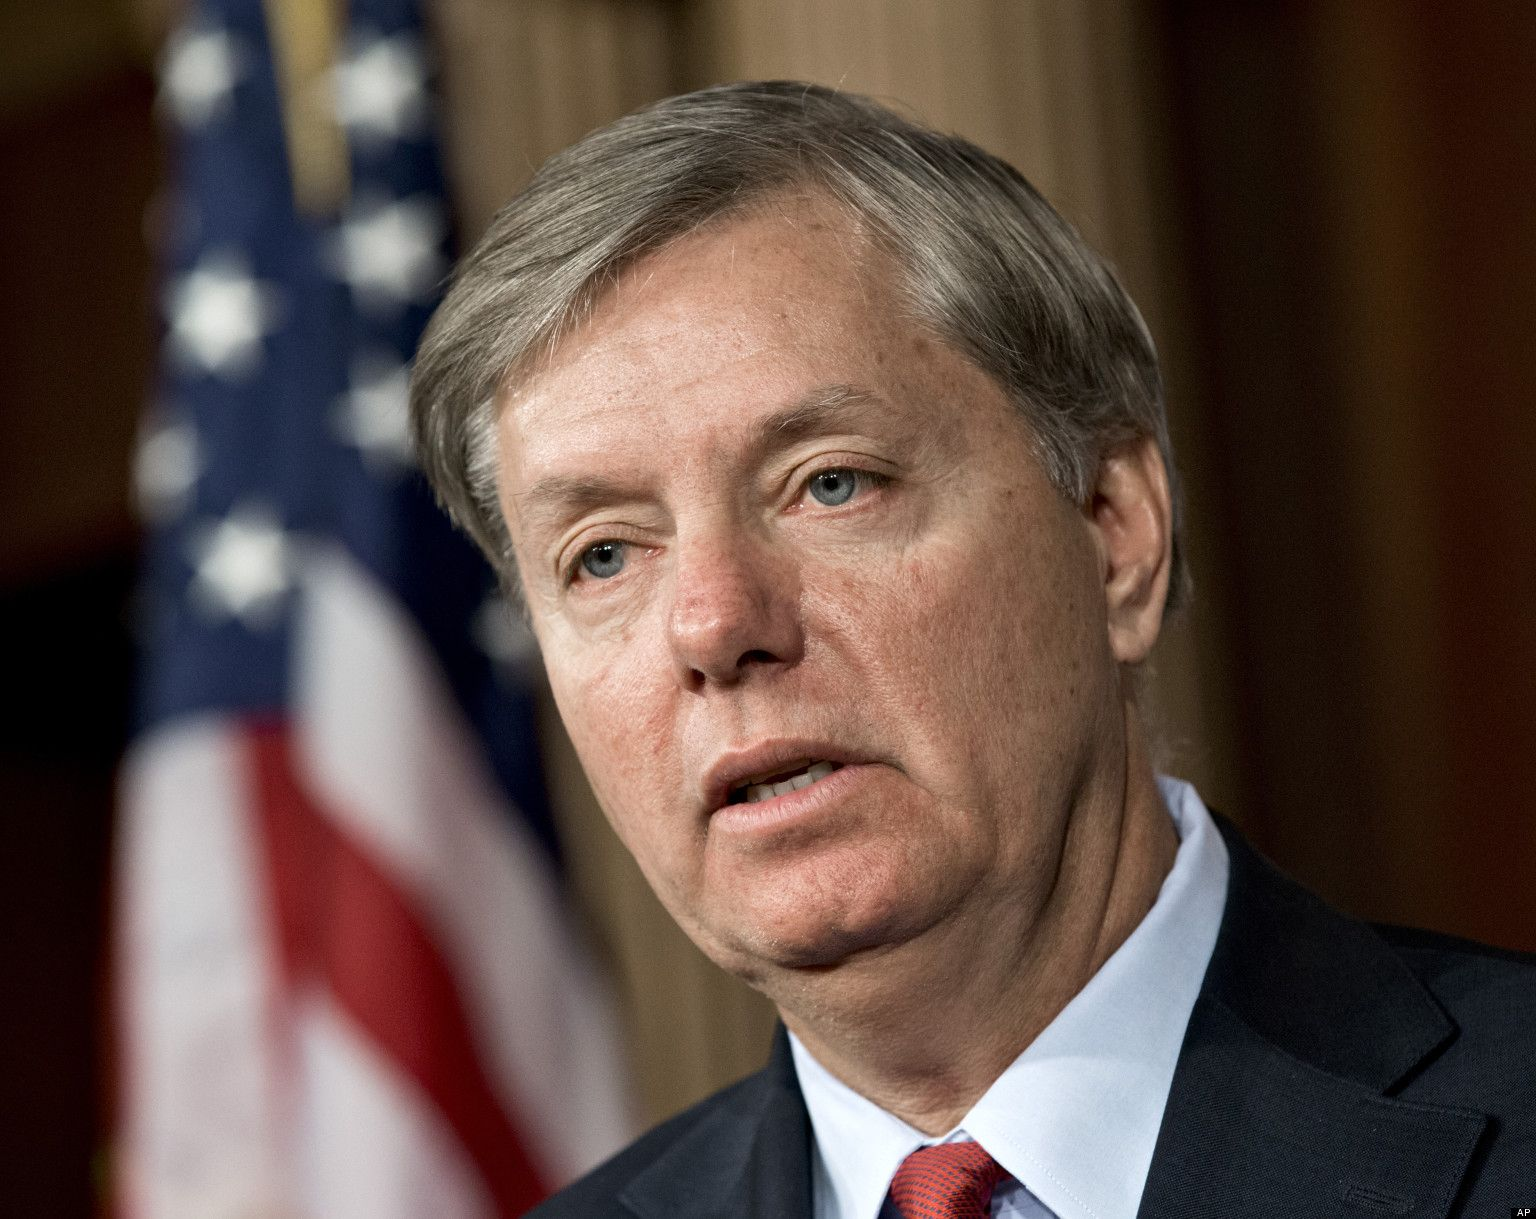 Image from http://rightweb.irc-online.org/images/uploads/lindsey-graham1.jpg.